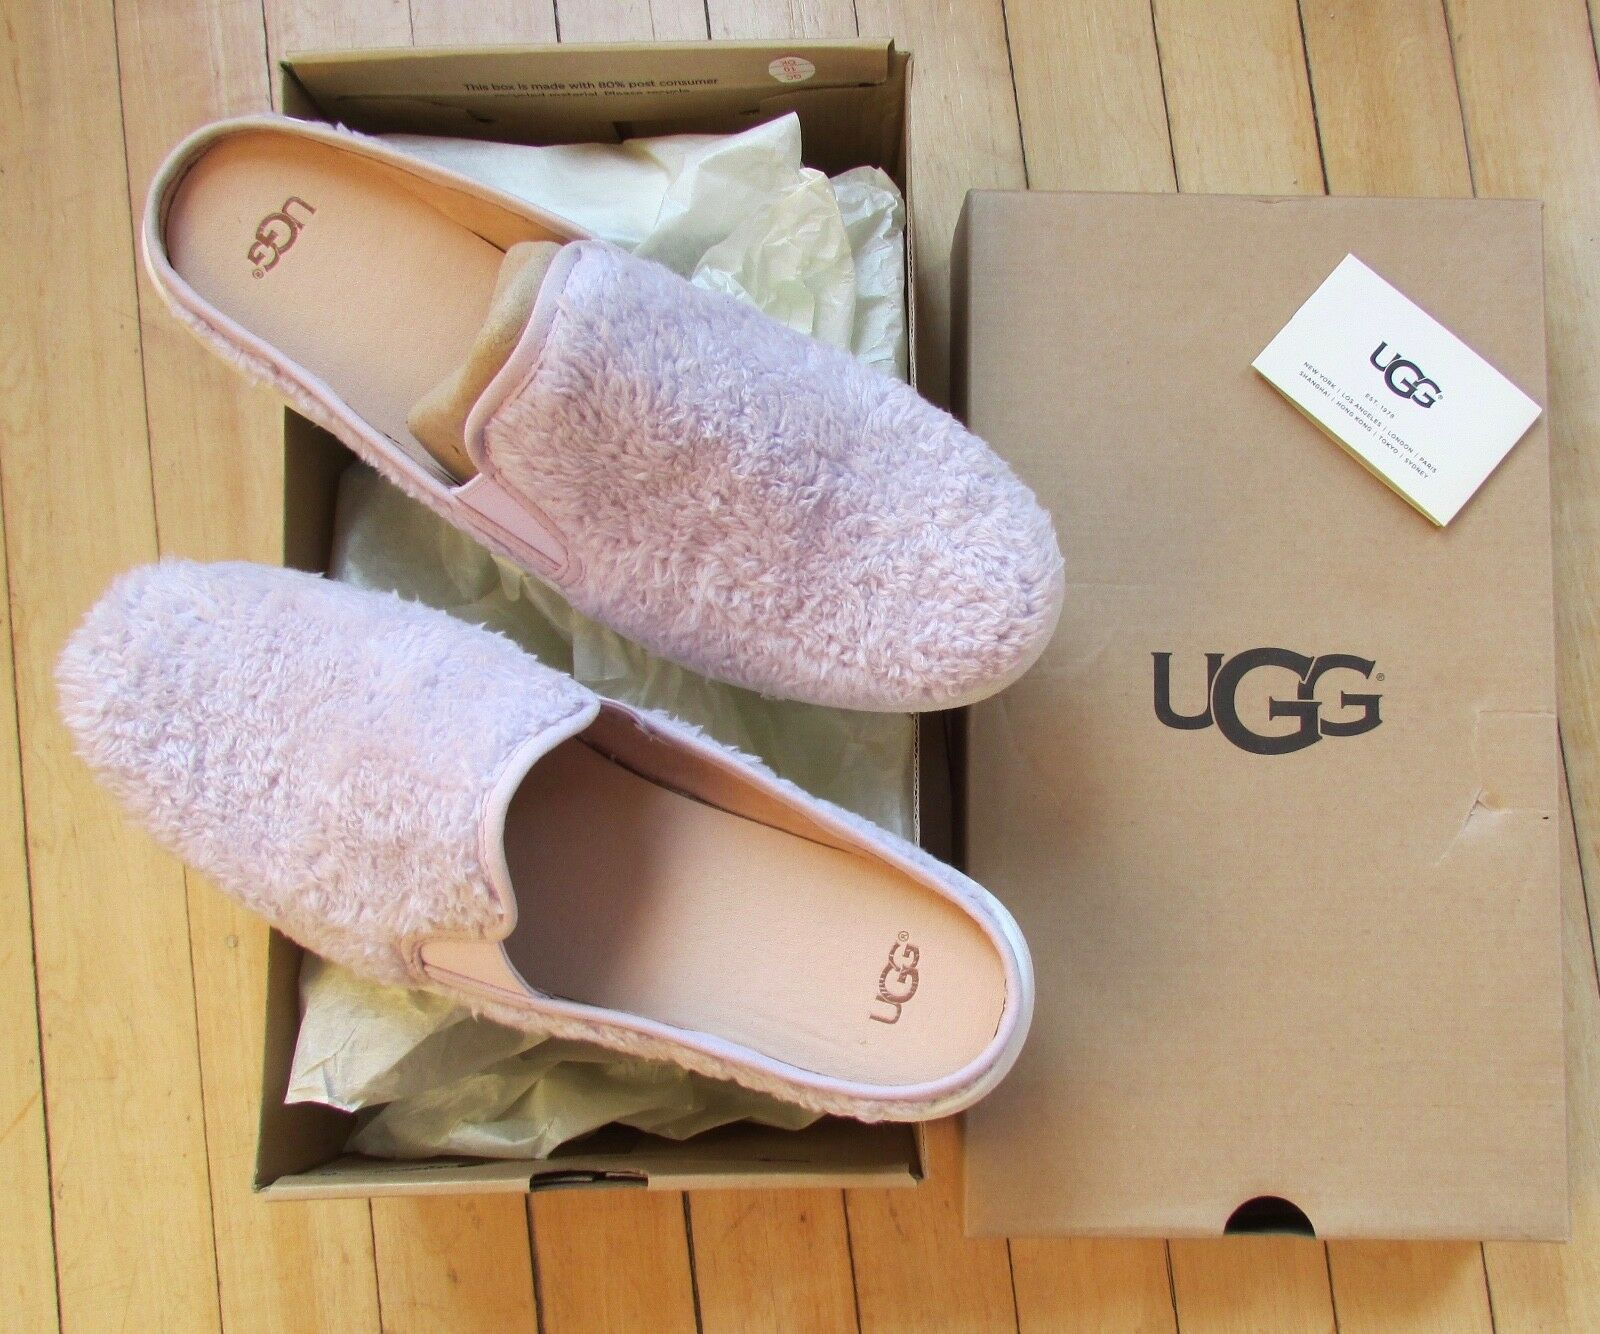 UGG Slippers Luci Slip On Sneakers Lavender fog Size 11 NEW